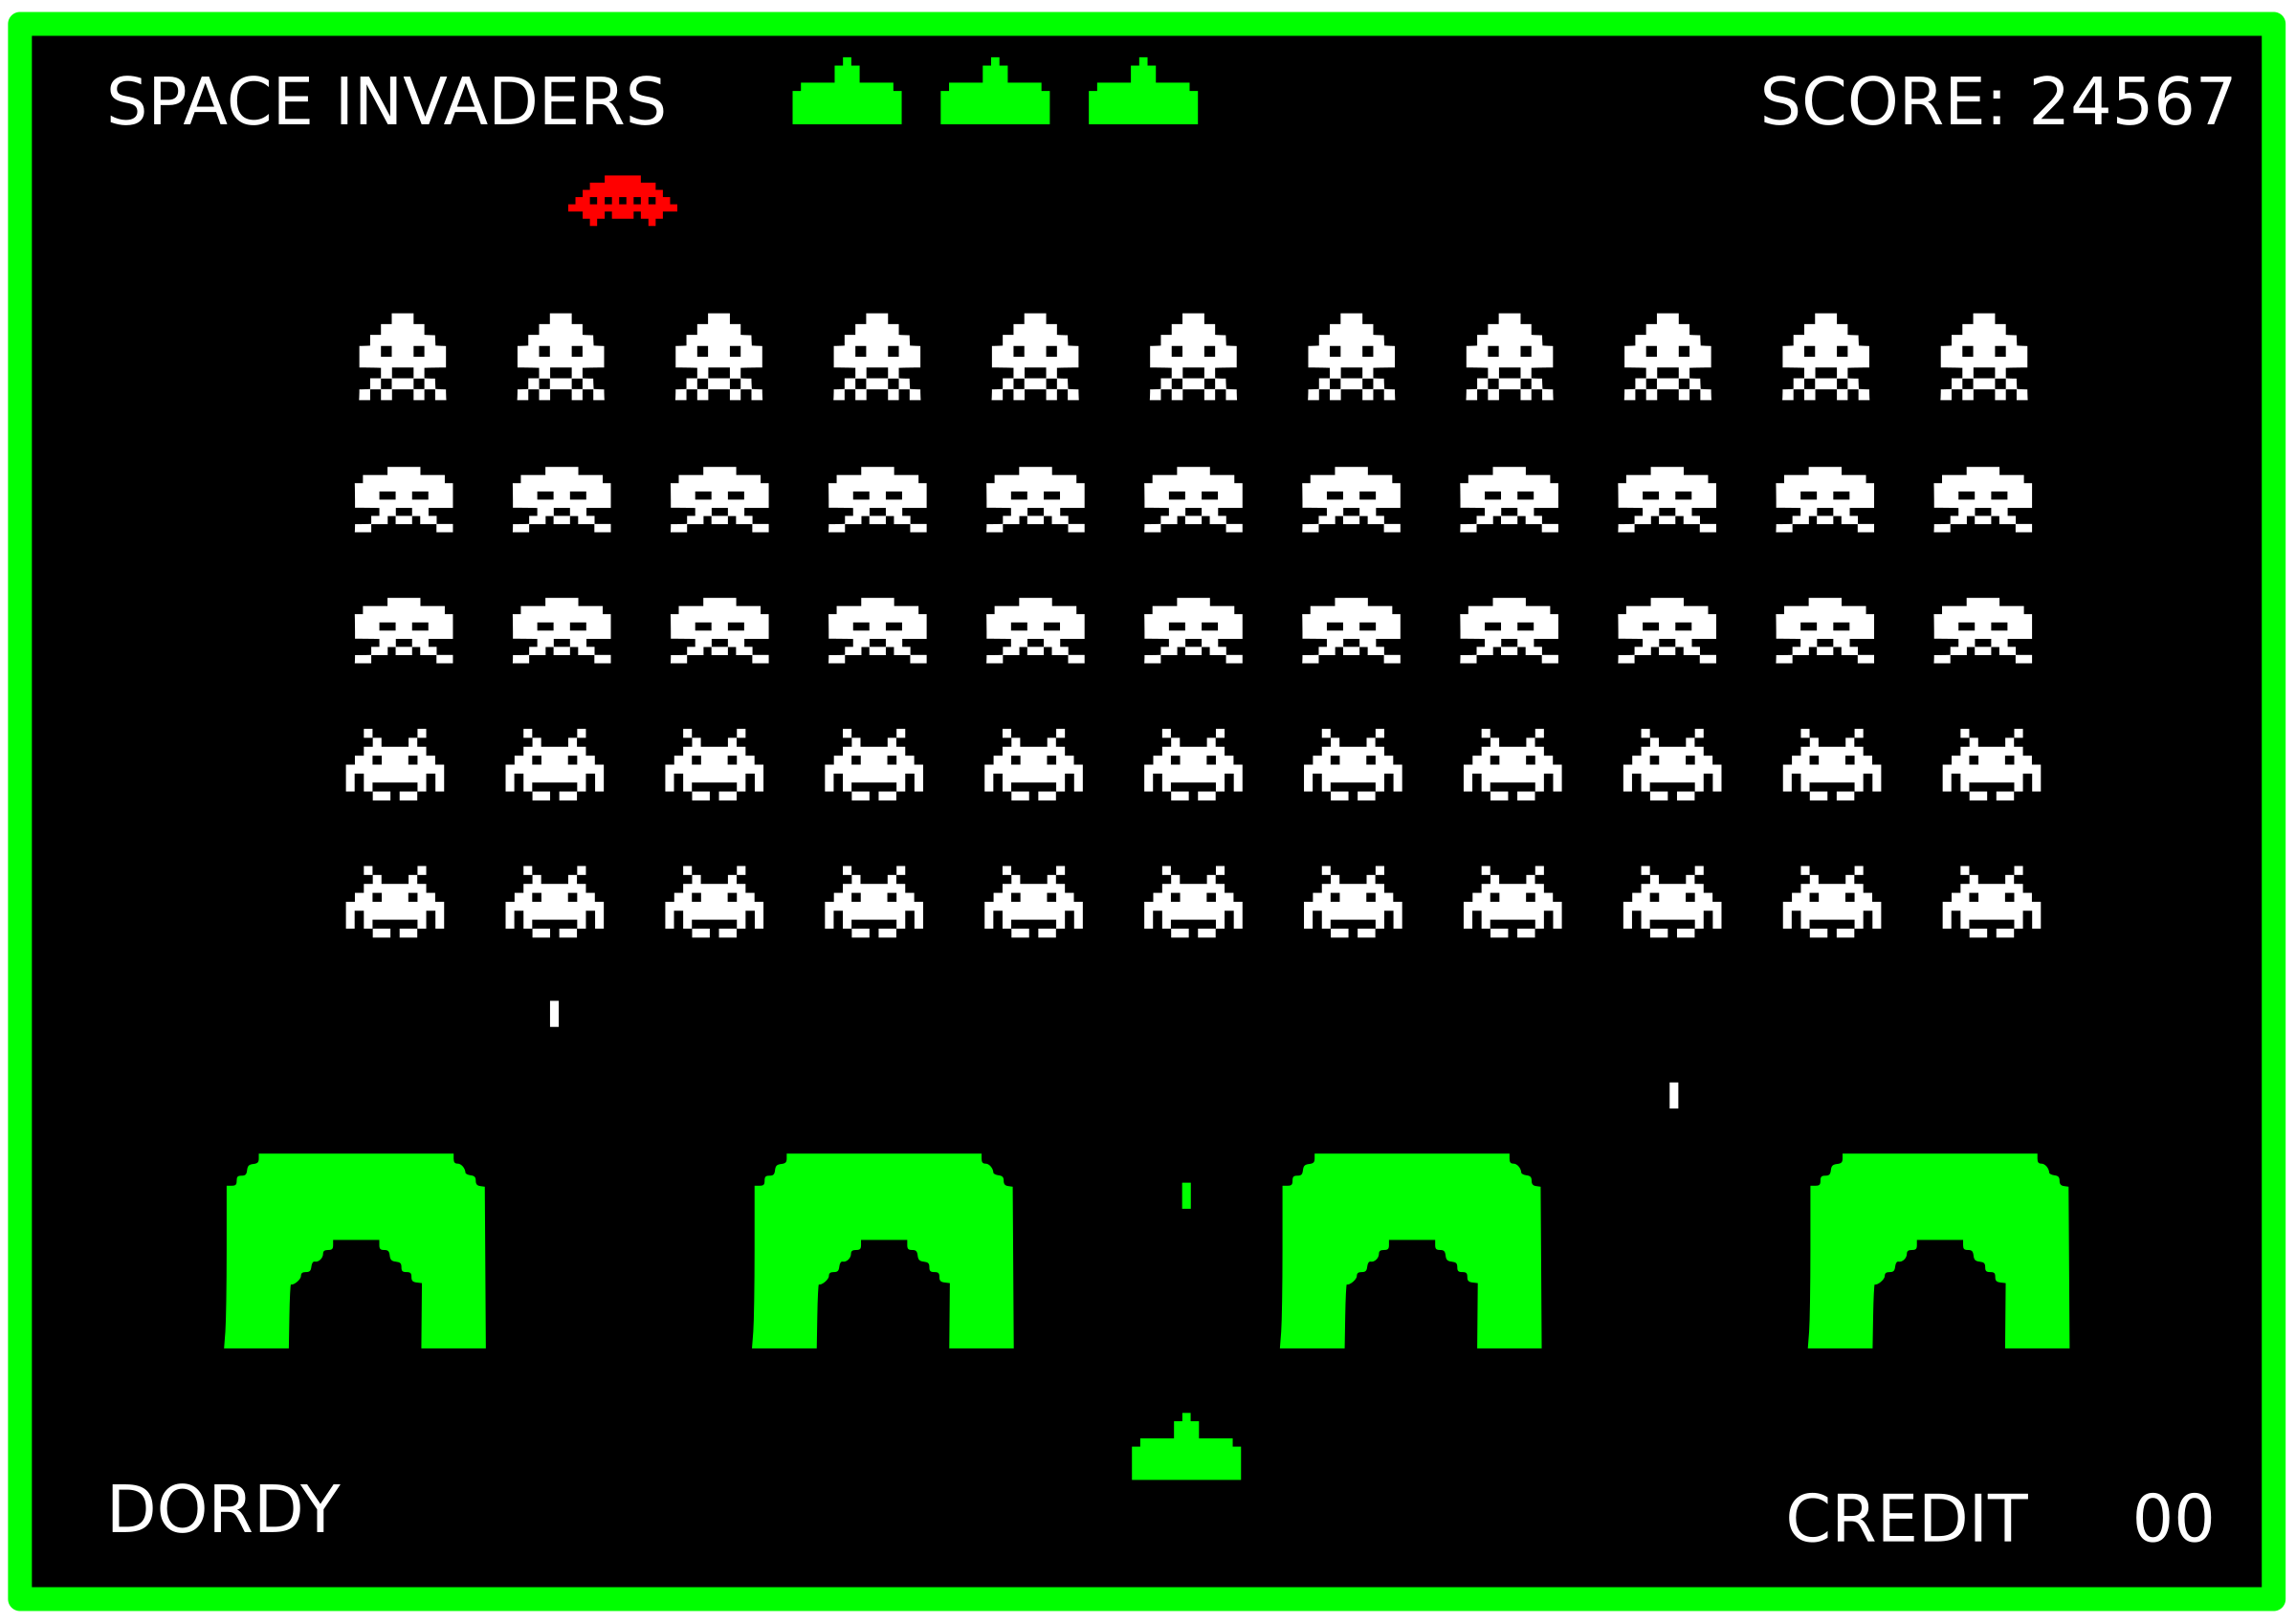 SPACE INVADERS by dordy